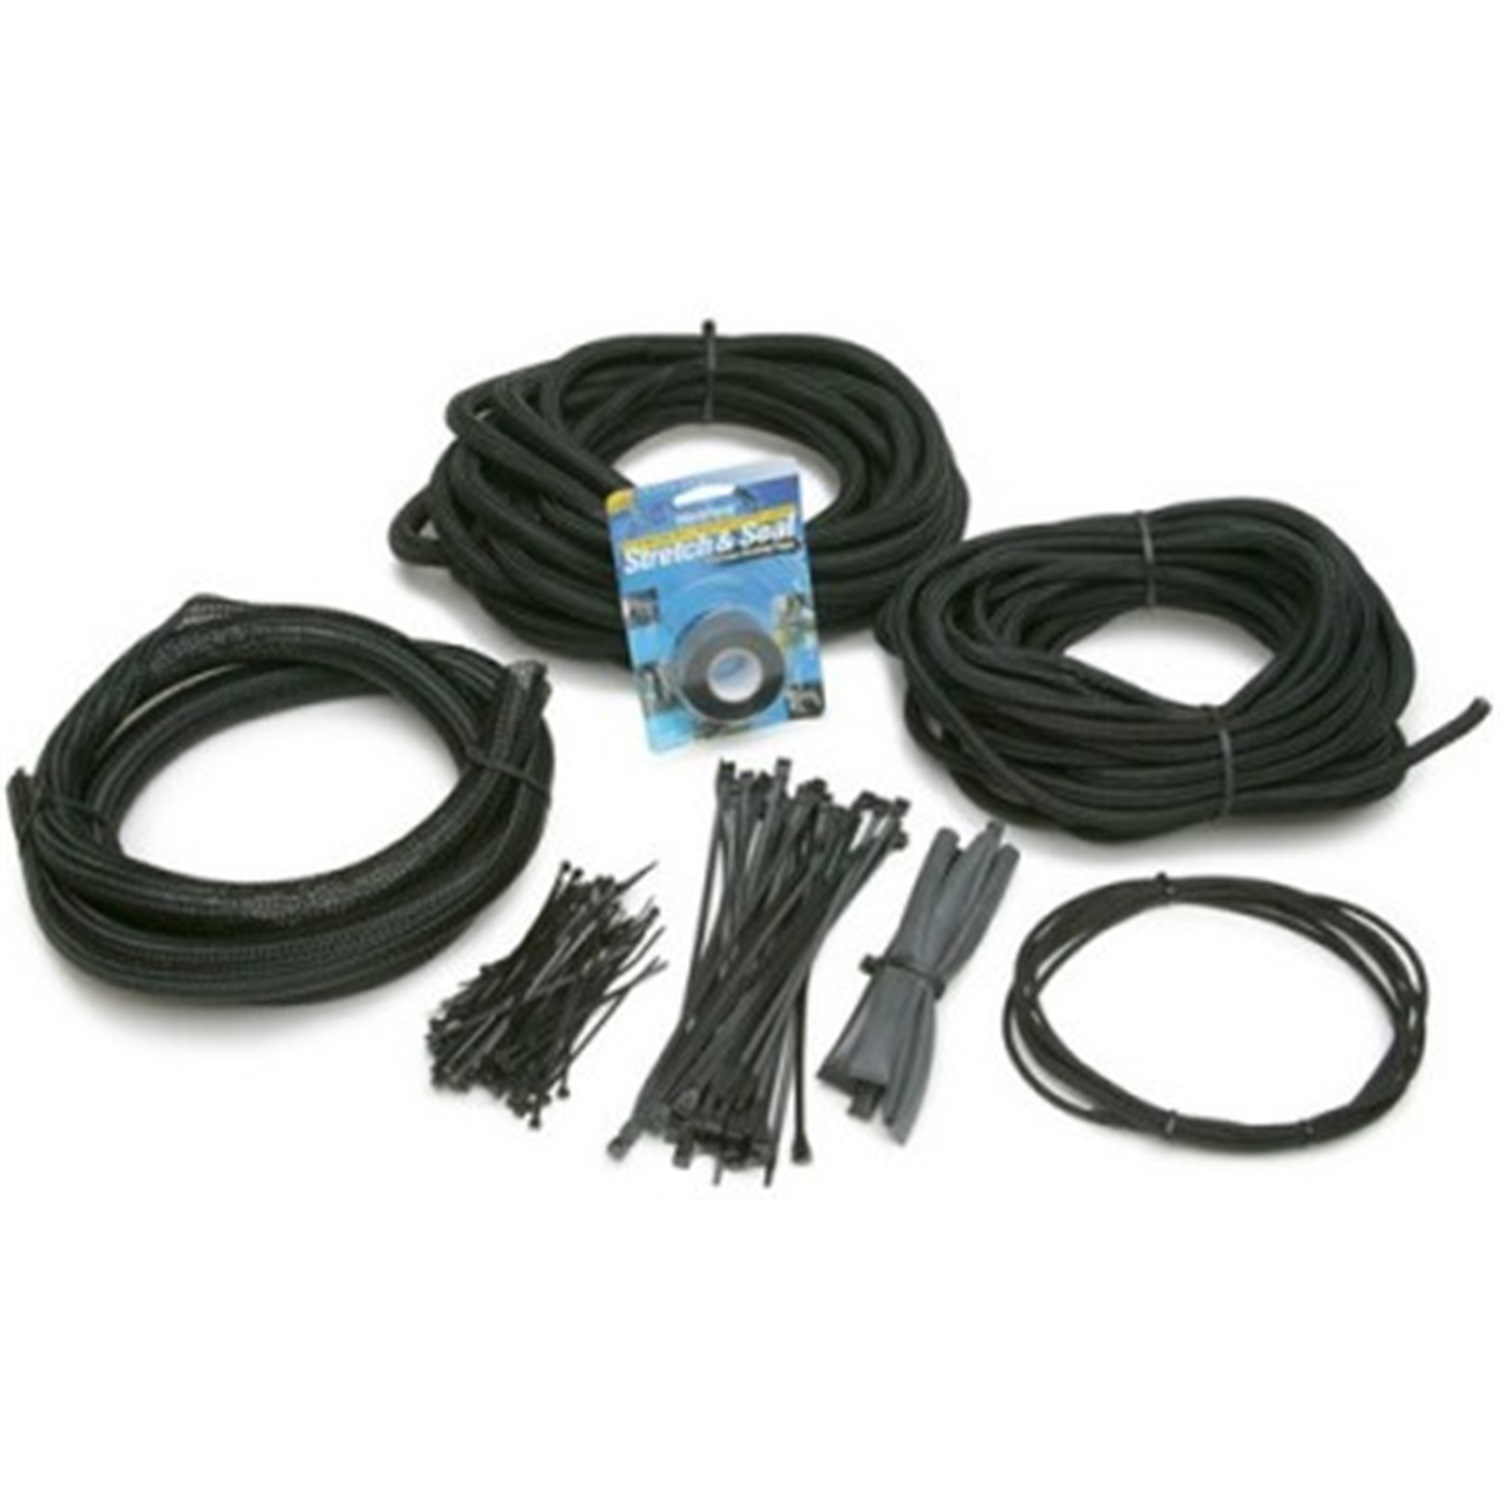 Painless Performance 70923 PAN70923 POWERBRAID 70-81 CAMARO KT